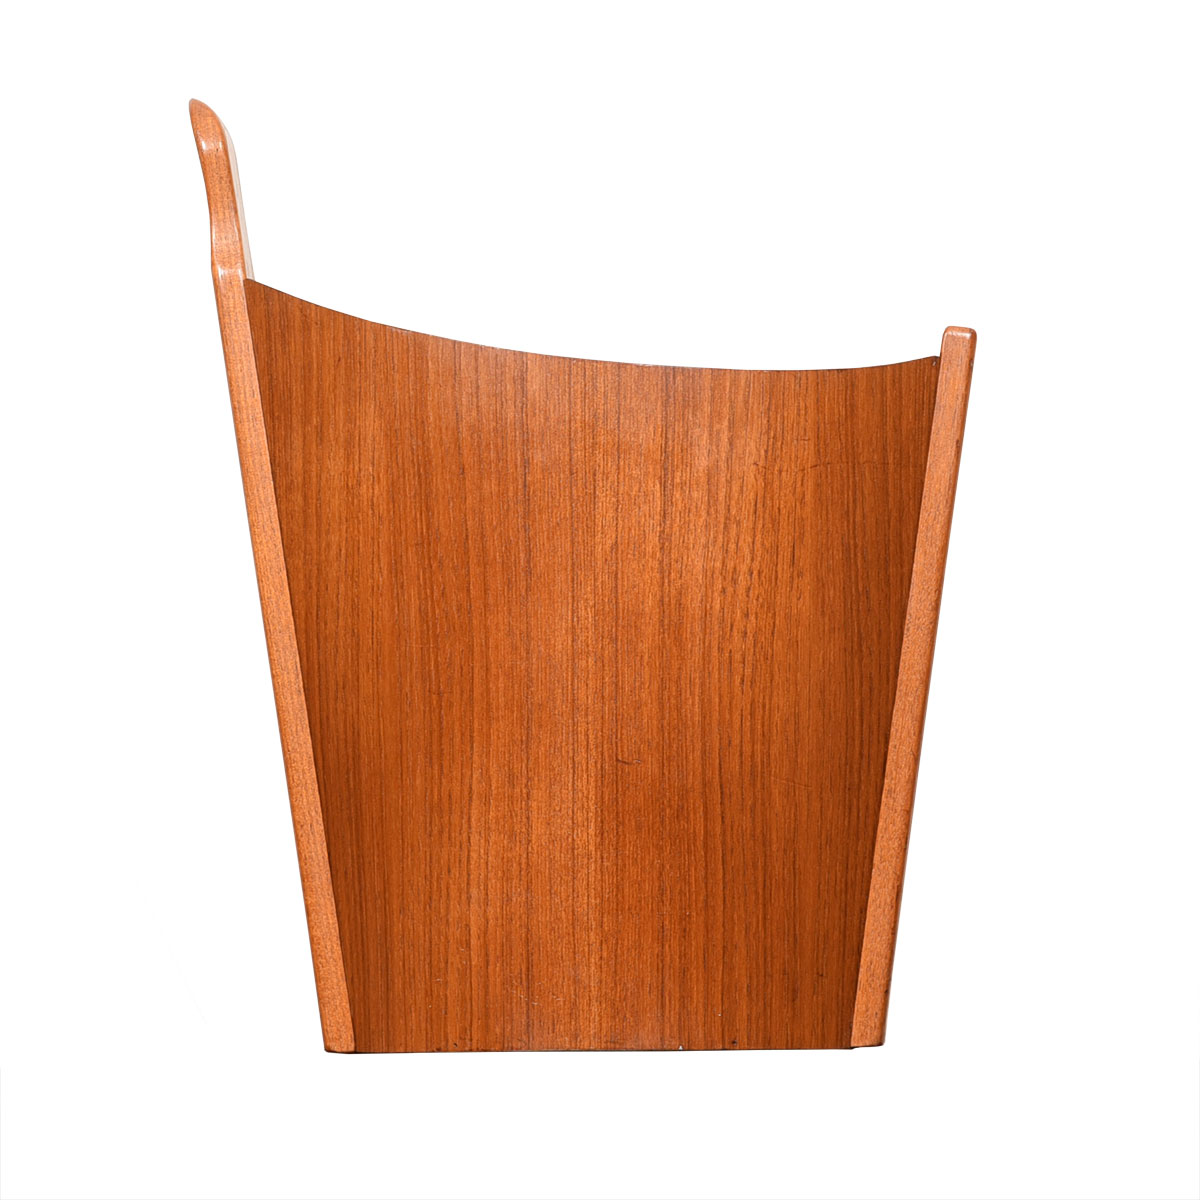 Danish Teak Sculptural Waste Basket by Westnofa